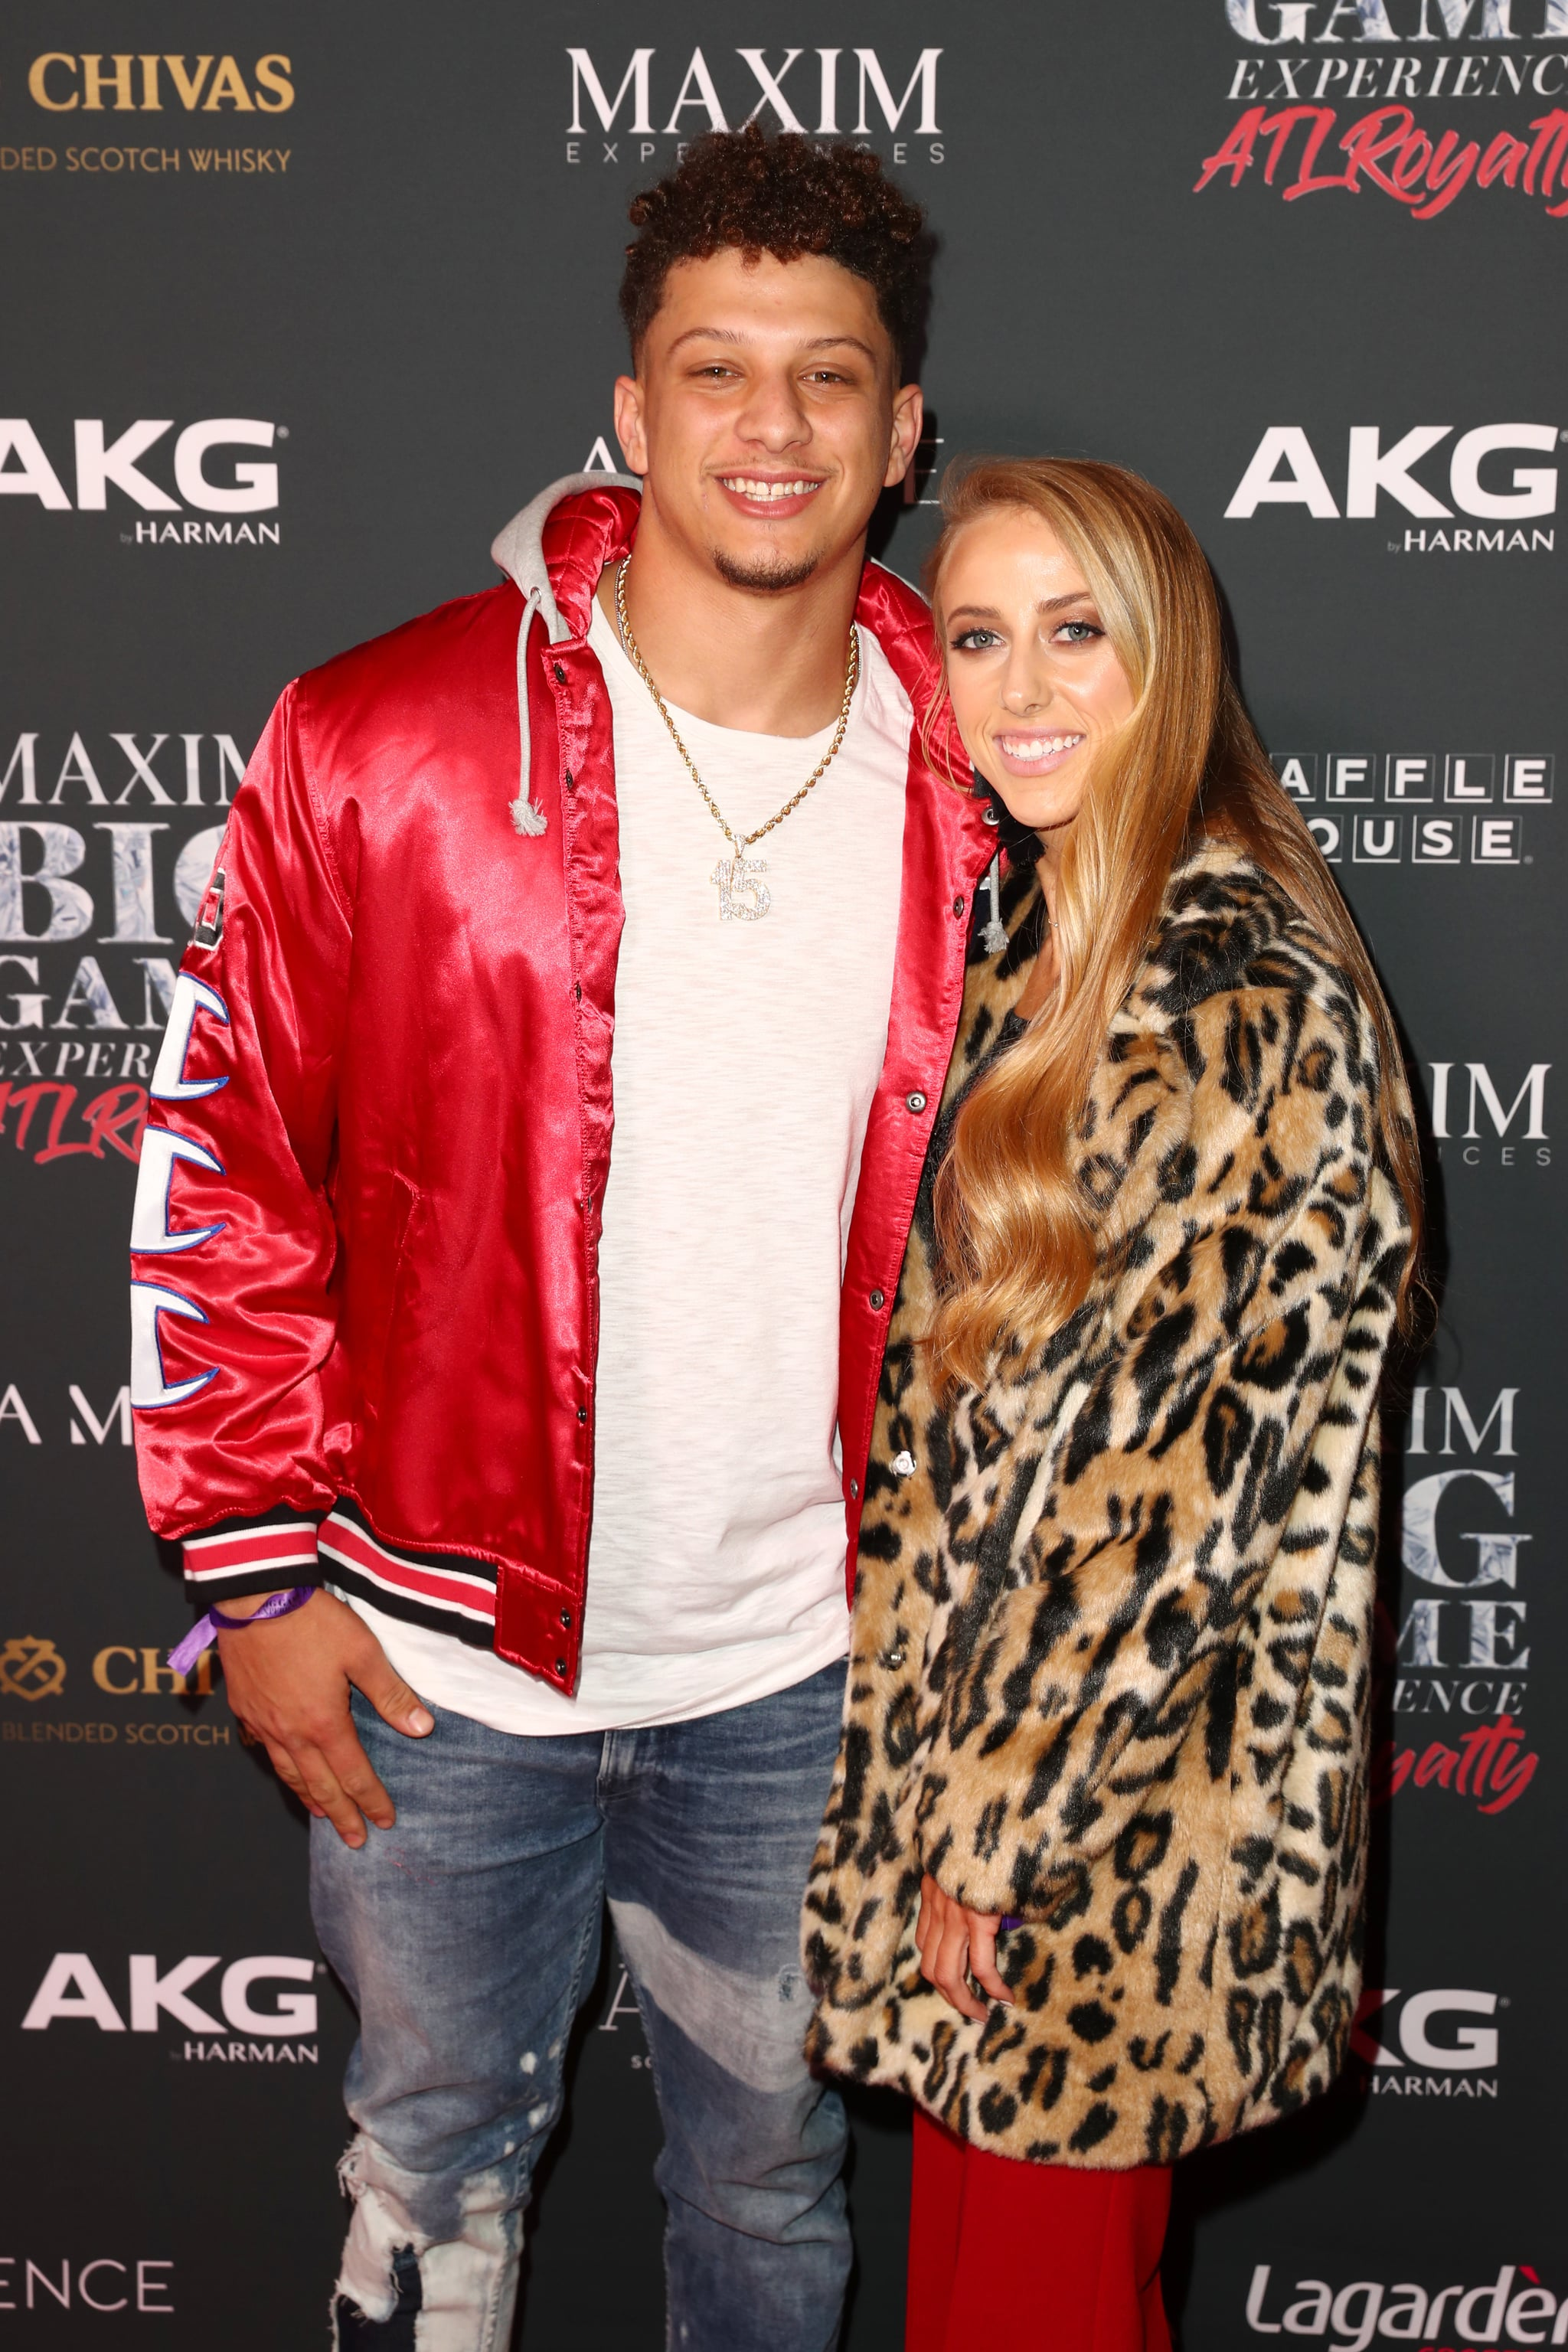 ATLANTA, GEORGIA - FEBRUARY 02: Patrick Mahomes II (L) and Brittany Matthews attend The Maxim Big Game Experience at The Fairmont on February 02, 2019 in Atlanta, Georgia. (Photo by Joe Scarnici/Getty Images for Maxim)